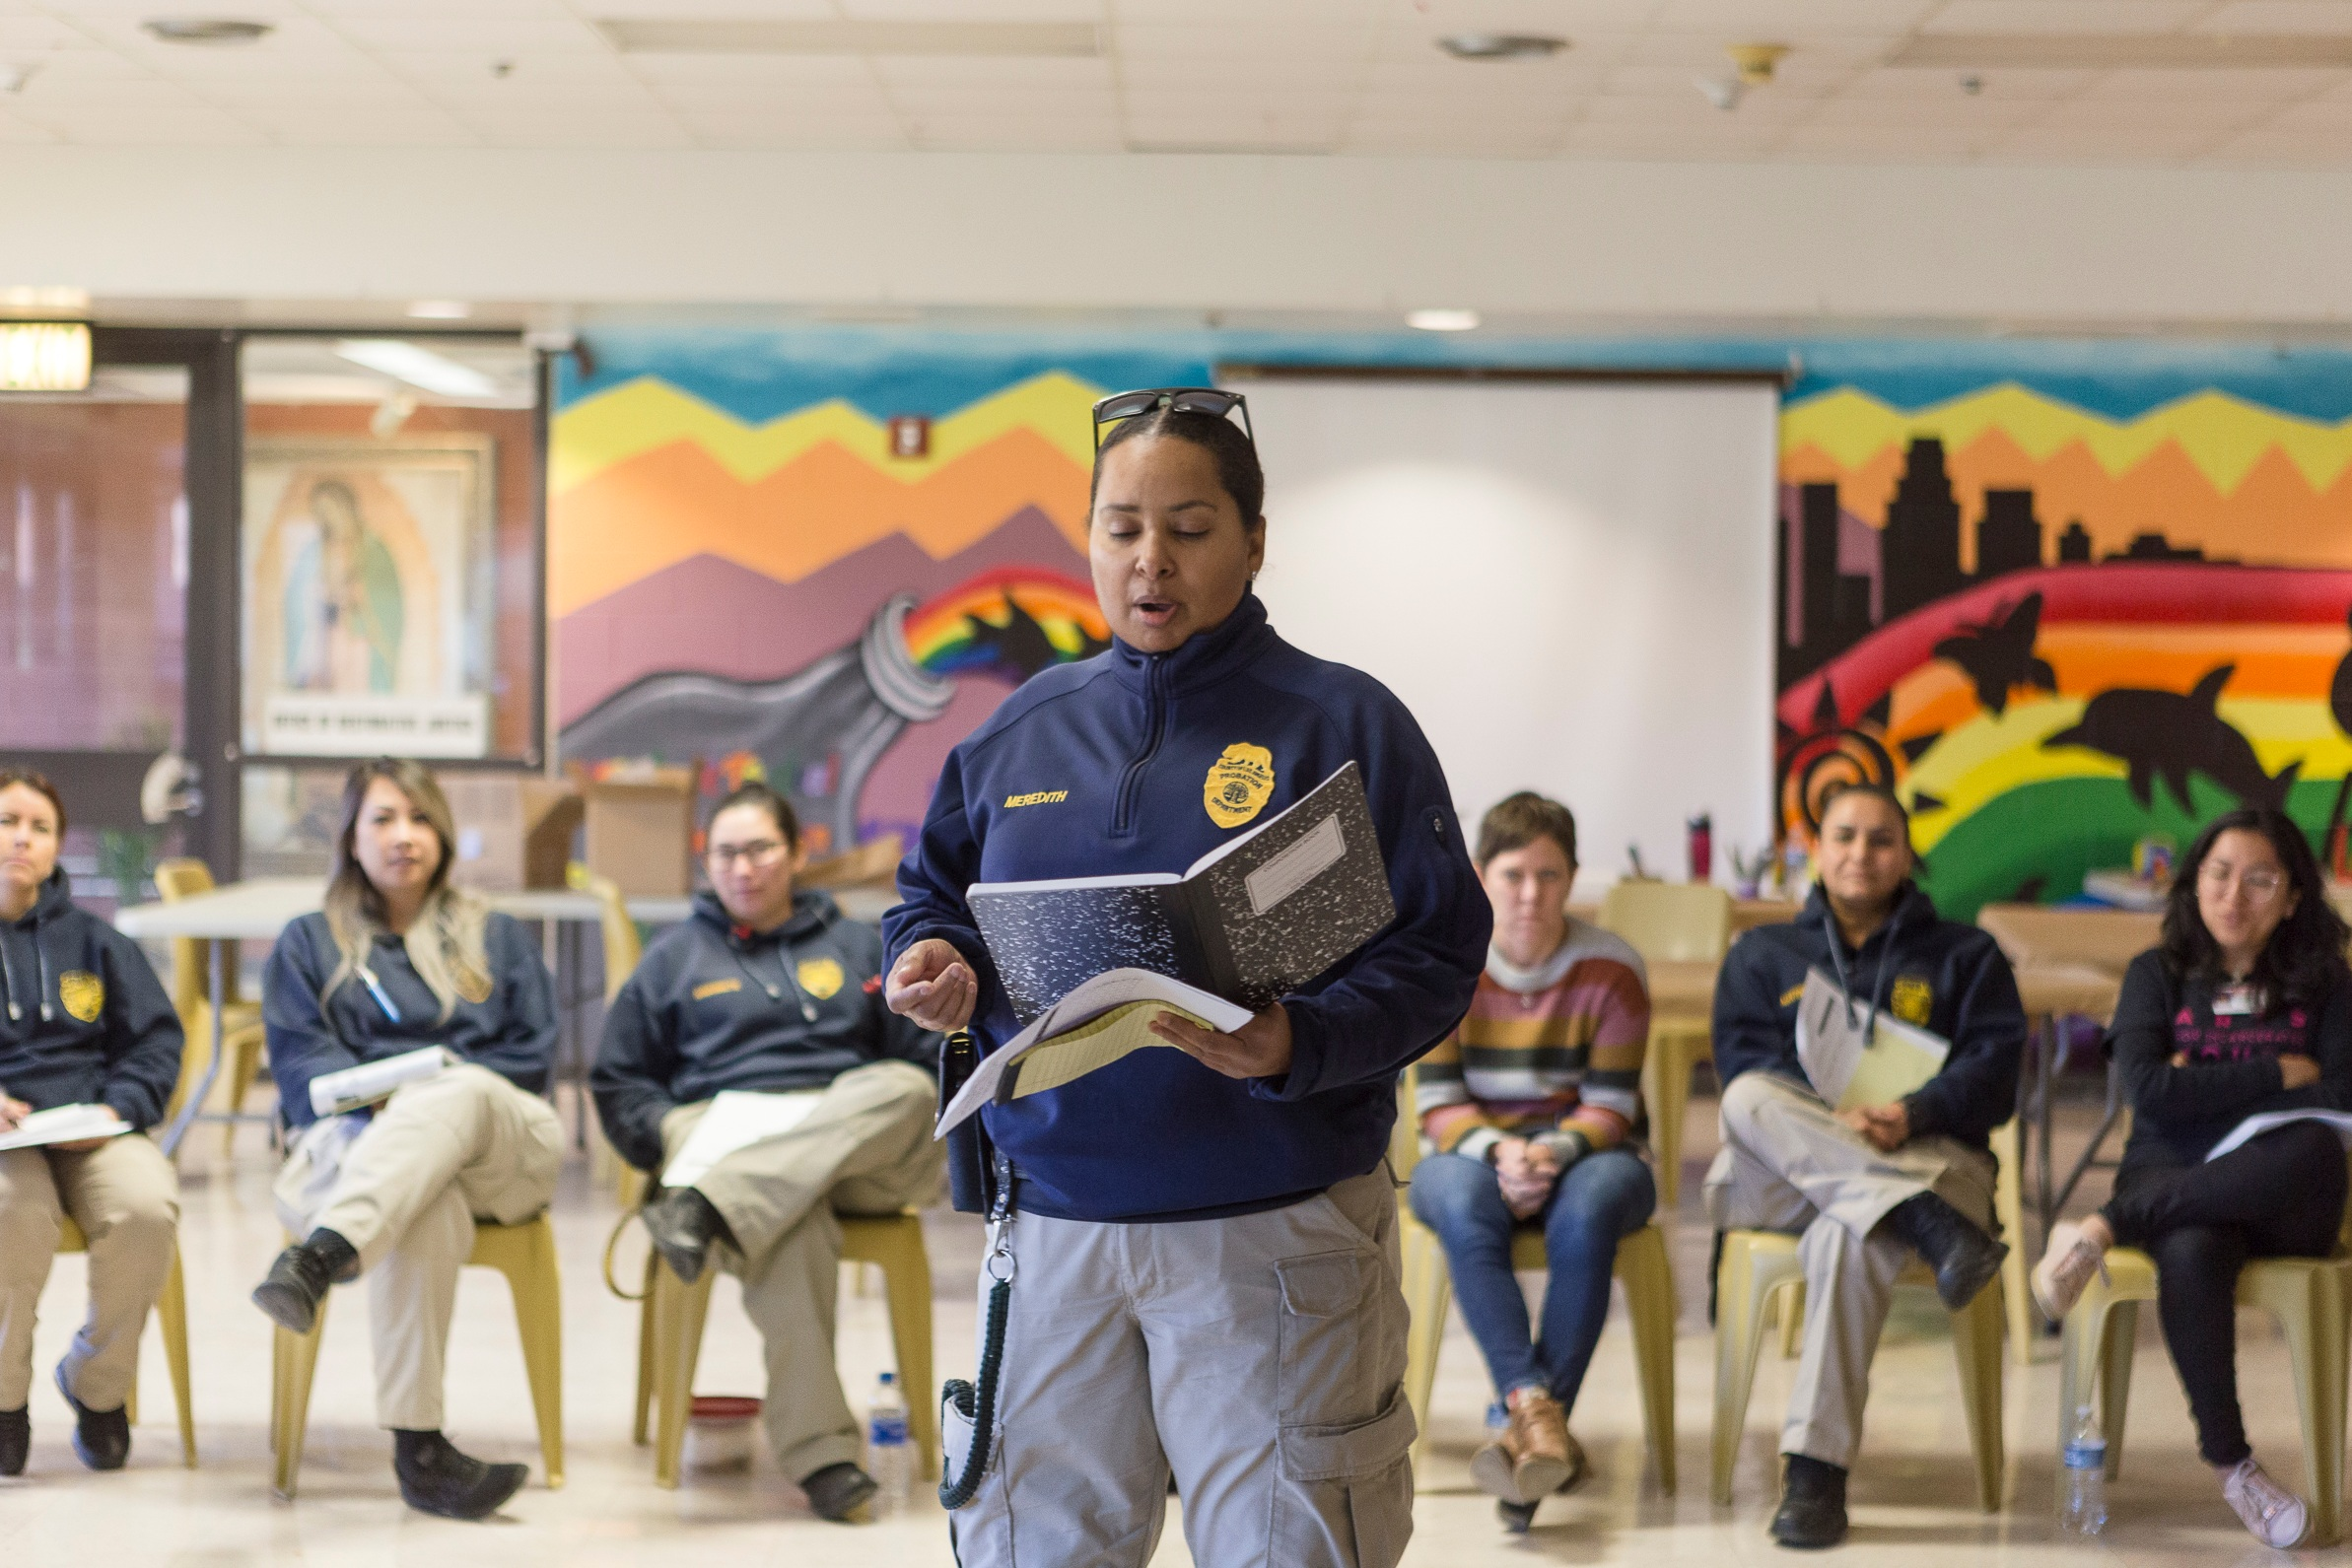 Probation staff share their writing, and drum together at our hands-on arts engagement and training of probation staff at Barry J. Nidorf.   Photo Credit: Maira Rios